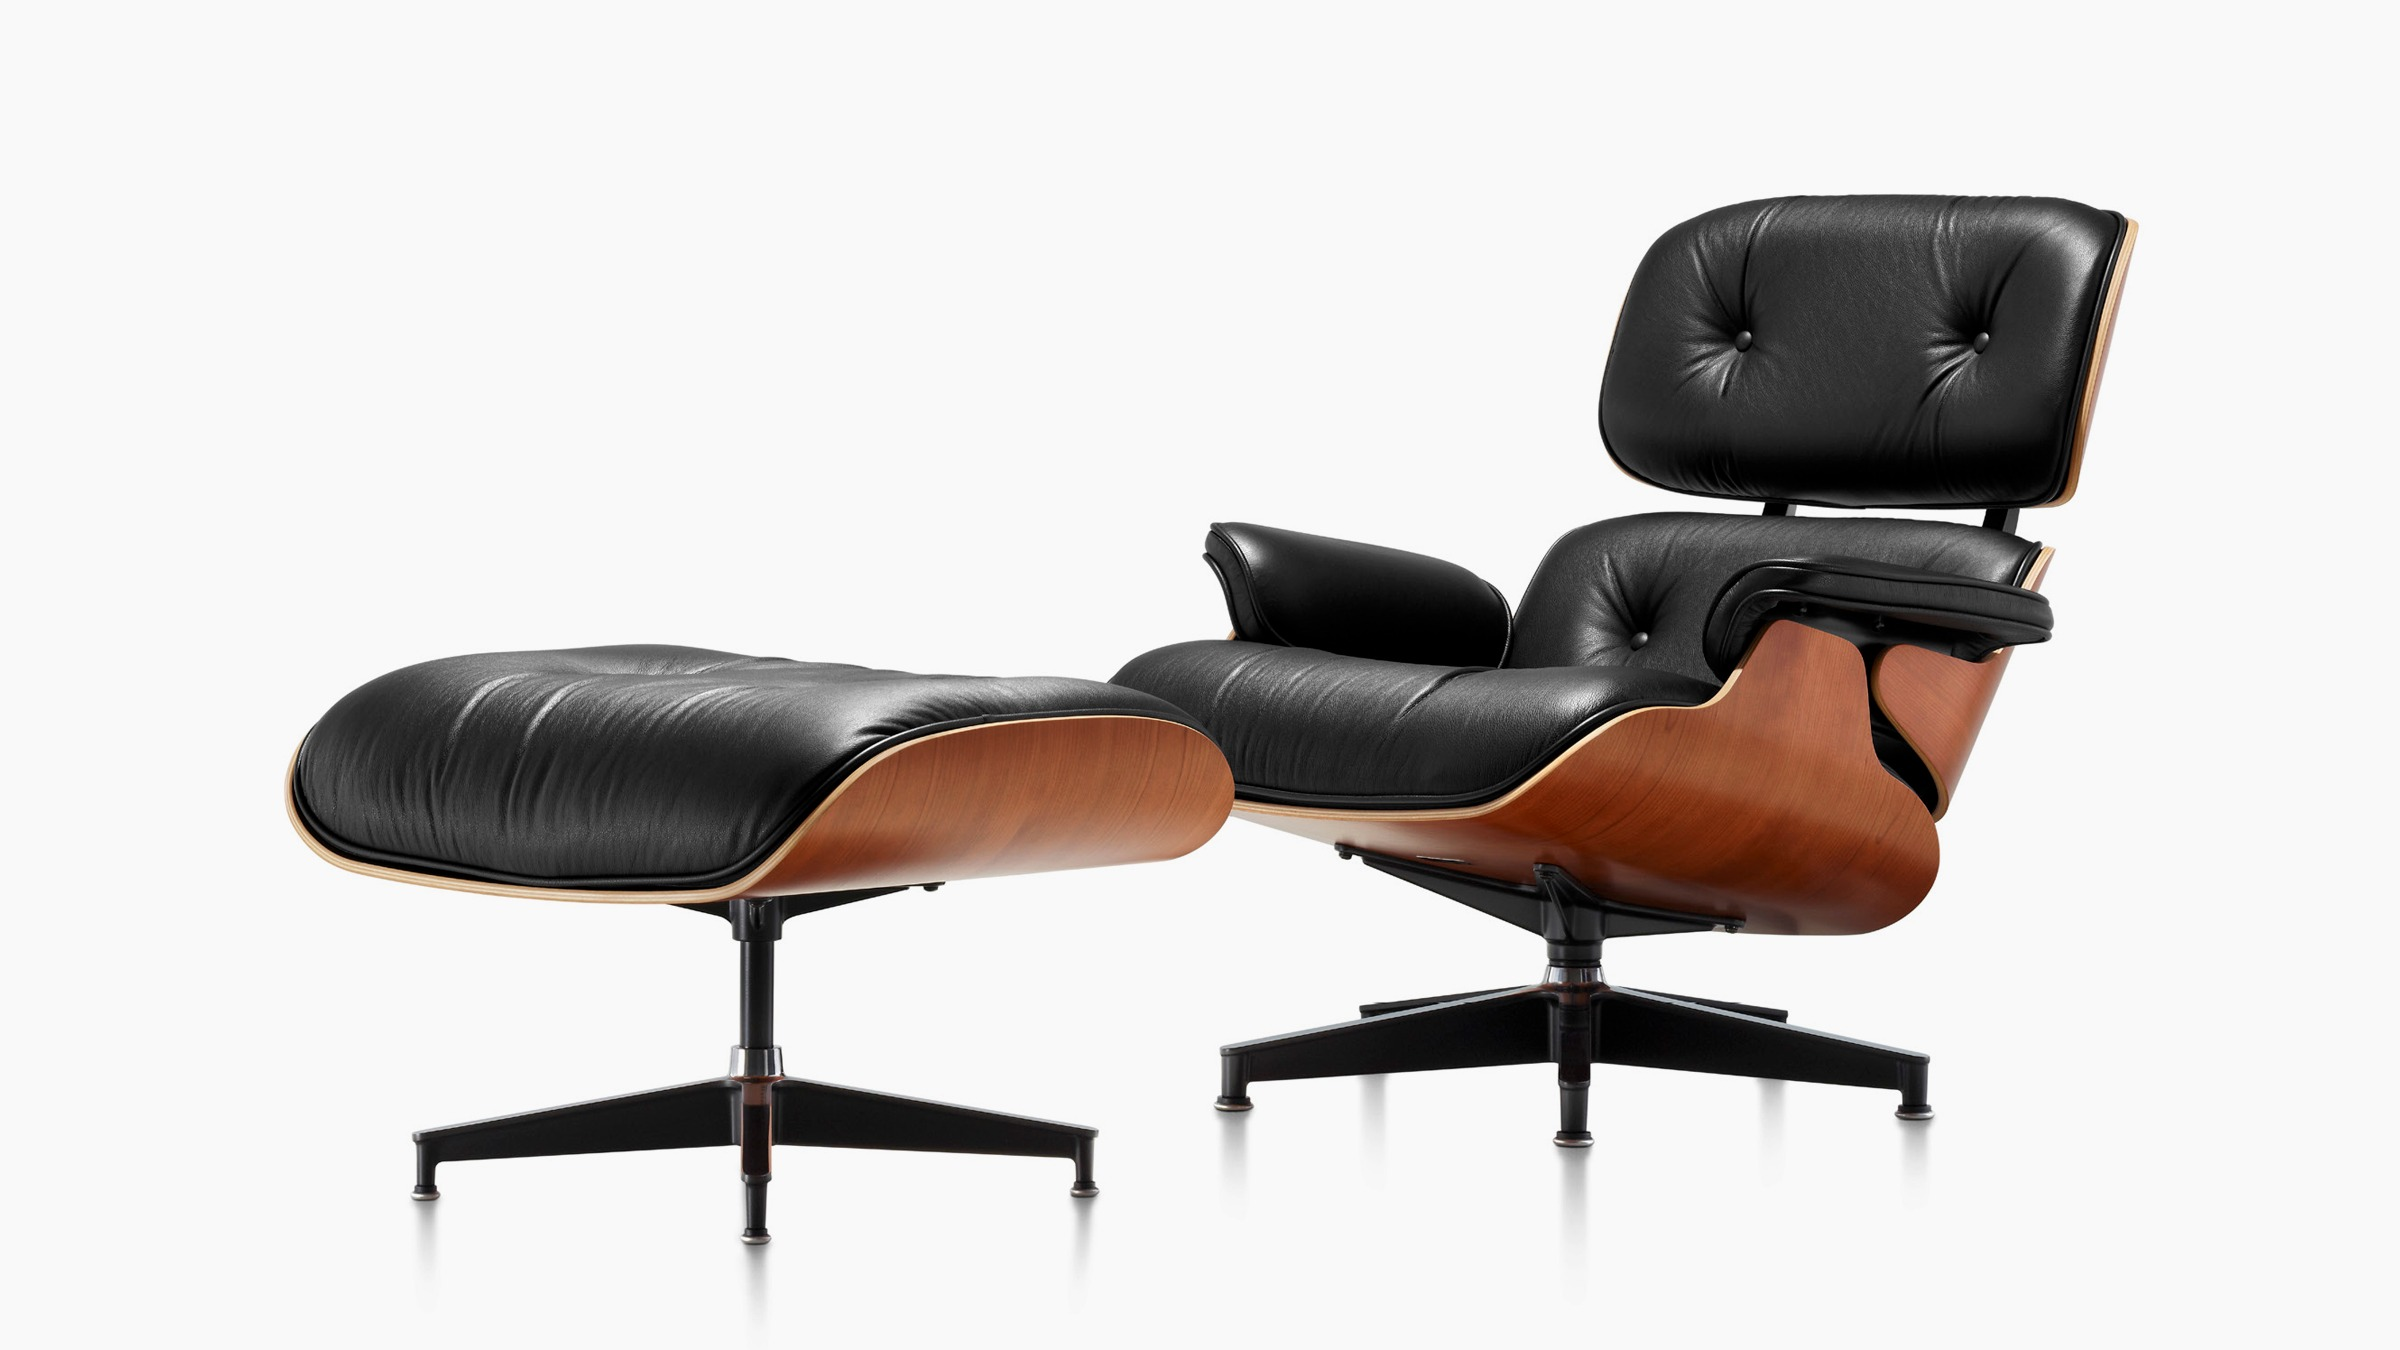 Theres a huge global black market for fake designer chairs